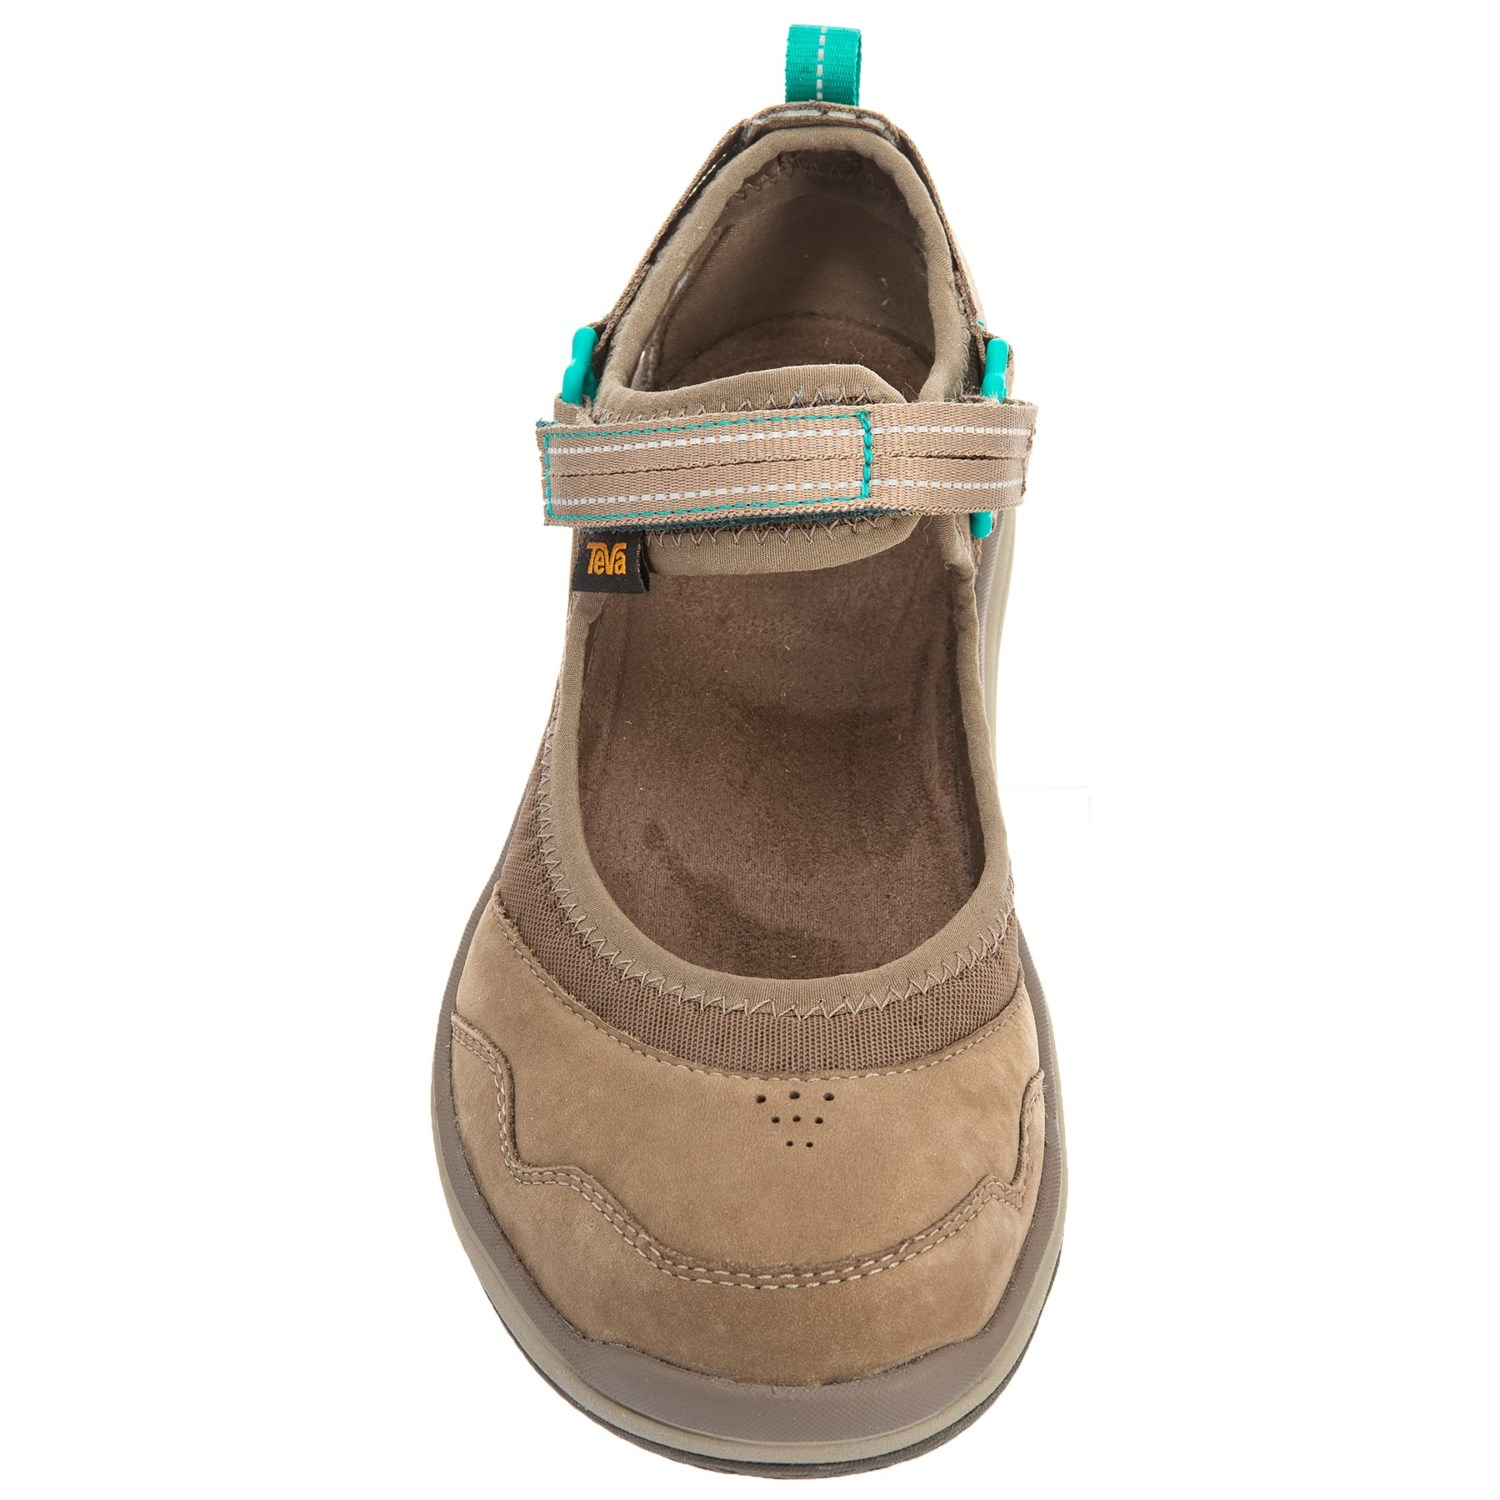 548d6d90927a Teva Terra-Float Travel Mary Jane Water Shoes (For Women) - Save 25%